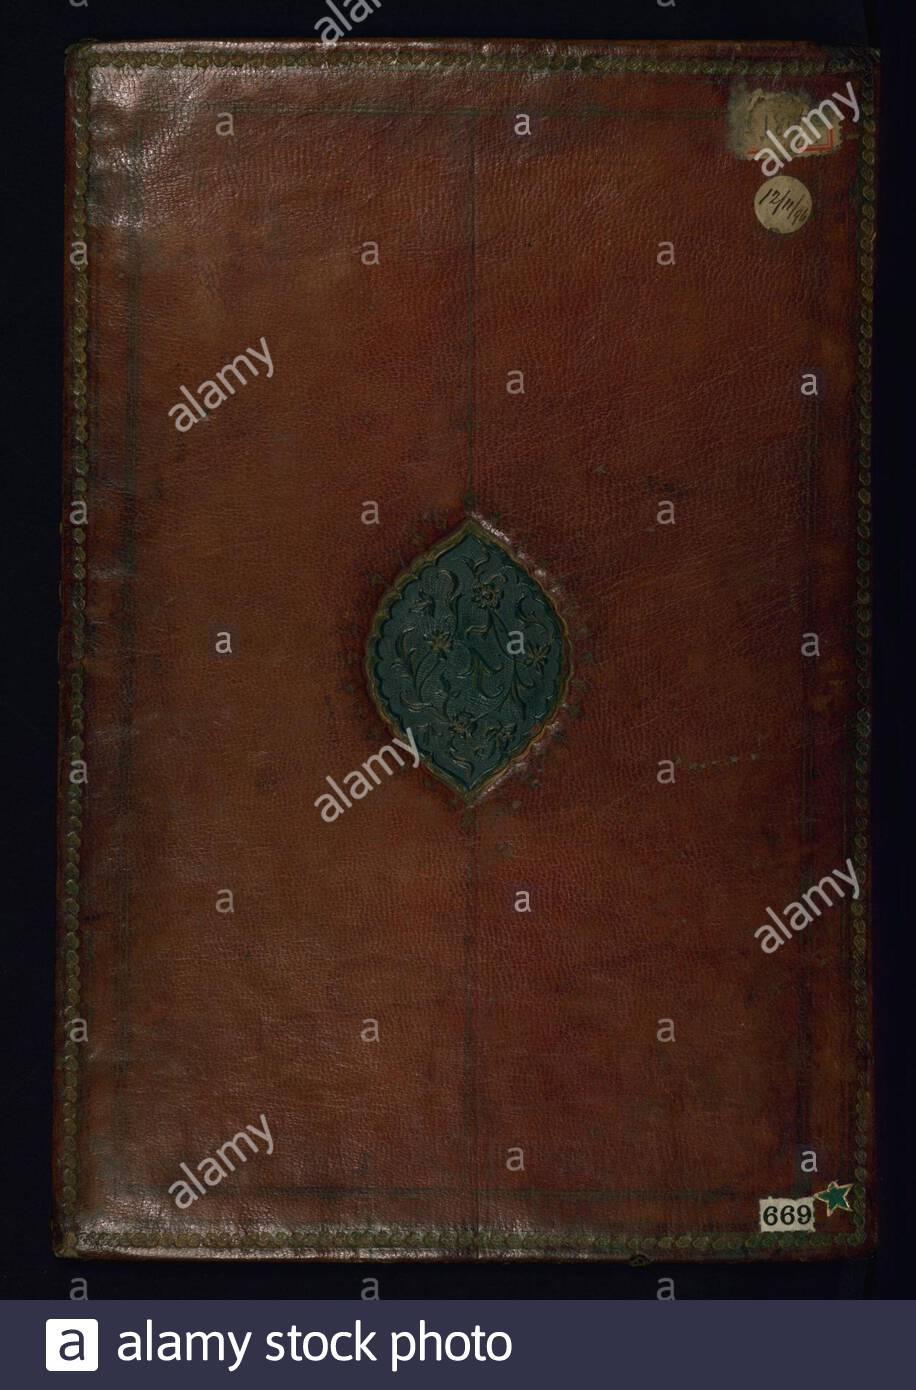 """""""Album of Indian Miniatures and Persian Calligraphy; English: Walters manuscript W.669 is an album (muraqqa') compiled in the late 13th century AH/AD 19th, or possibly later. It contains 19 Deccani paintings and 4 pages of hikastah calligraphy (fols. 3b, 7b, 8a, and 9b), one of which is dated 1211 AH/AD 1796 (fol. 3b). The paintings, which date to the late 12th century AH/AD 18th or 13th century AH/AD 19th, come from a ragmala series attributable to the Deccan. A ragmala is a visualization of a musical mode or melody. This album contains a mix of visualizations of ragas (male musical modes) an Stock Photo"""